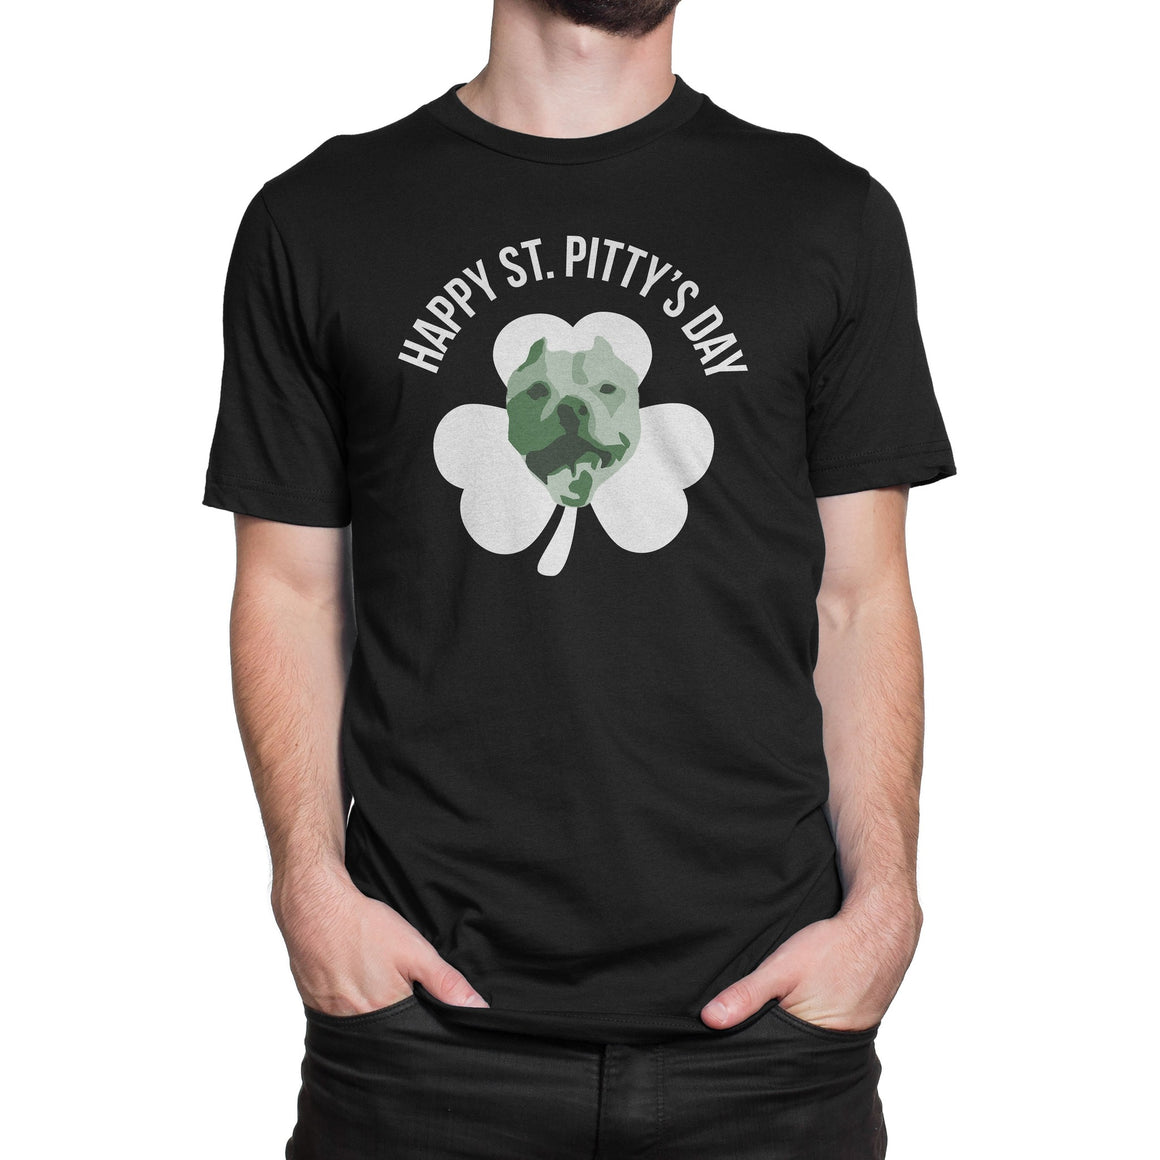 Happy St. Pitty's Day Black Pitbull Shirt